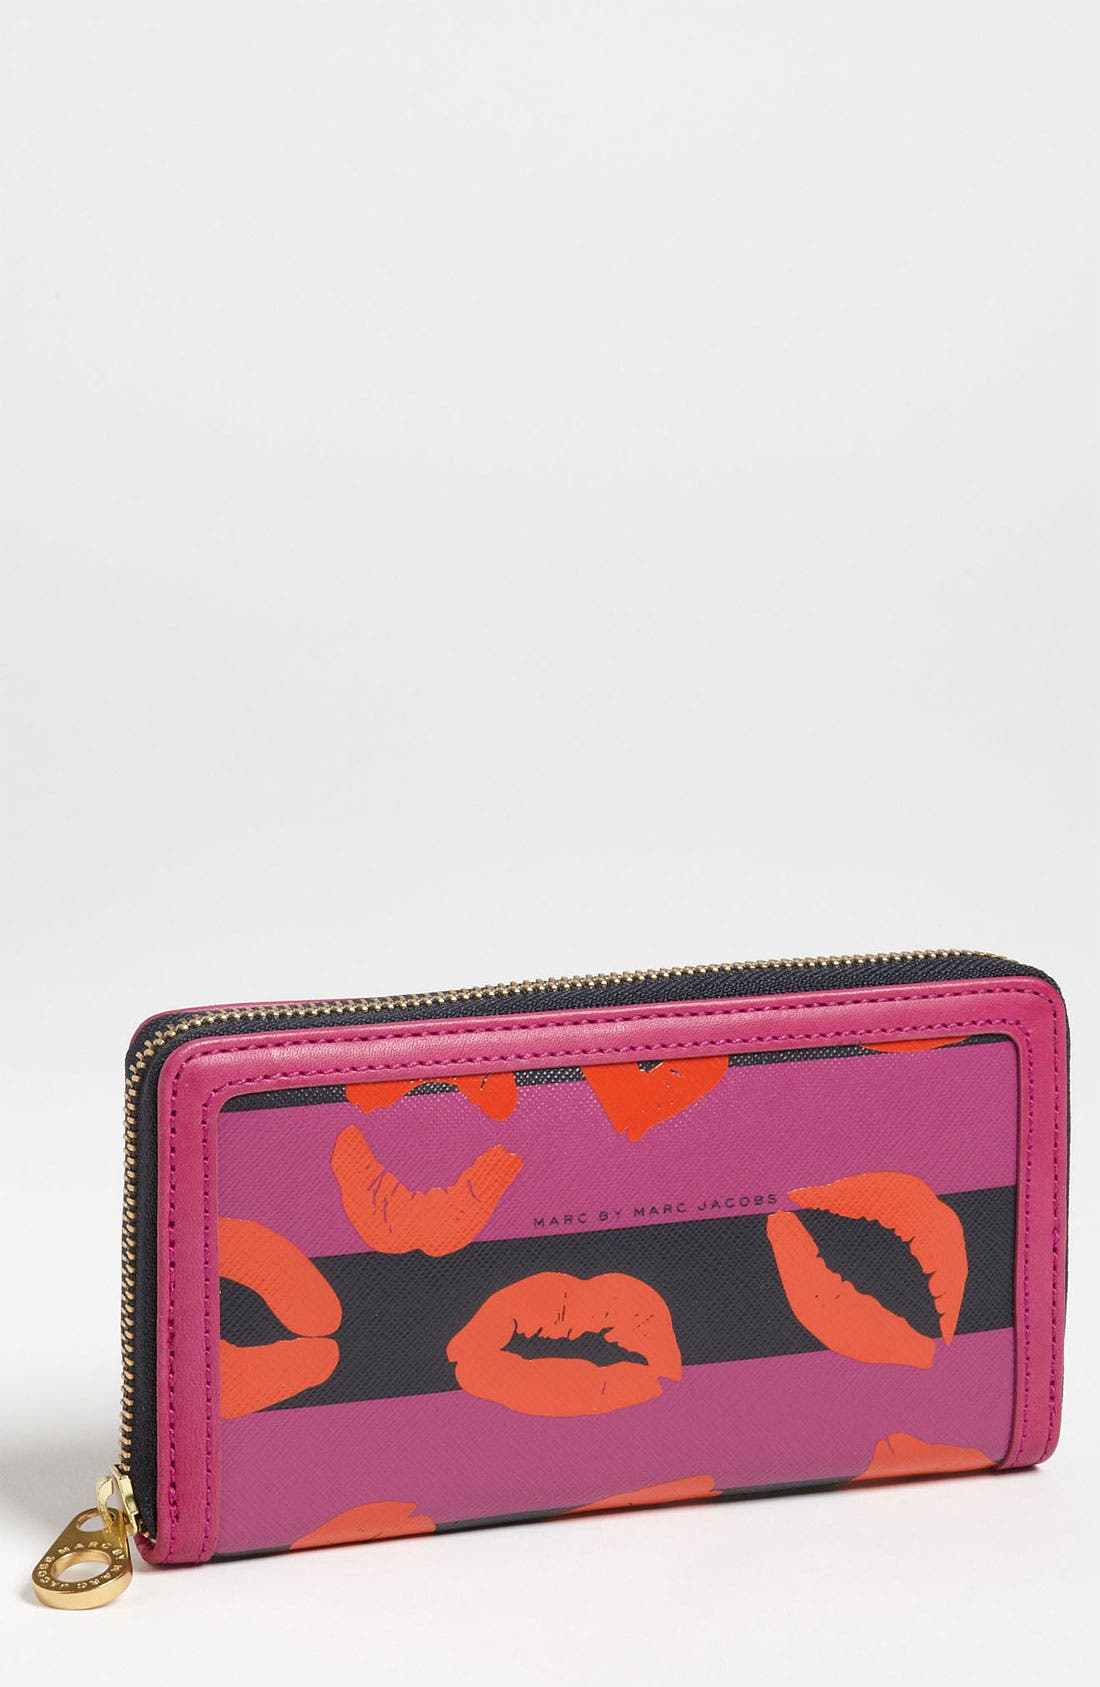 Main Image - MARC BY MARC JACOBS 'Eazy Pouch - Slim Zippy' Wallet